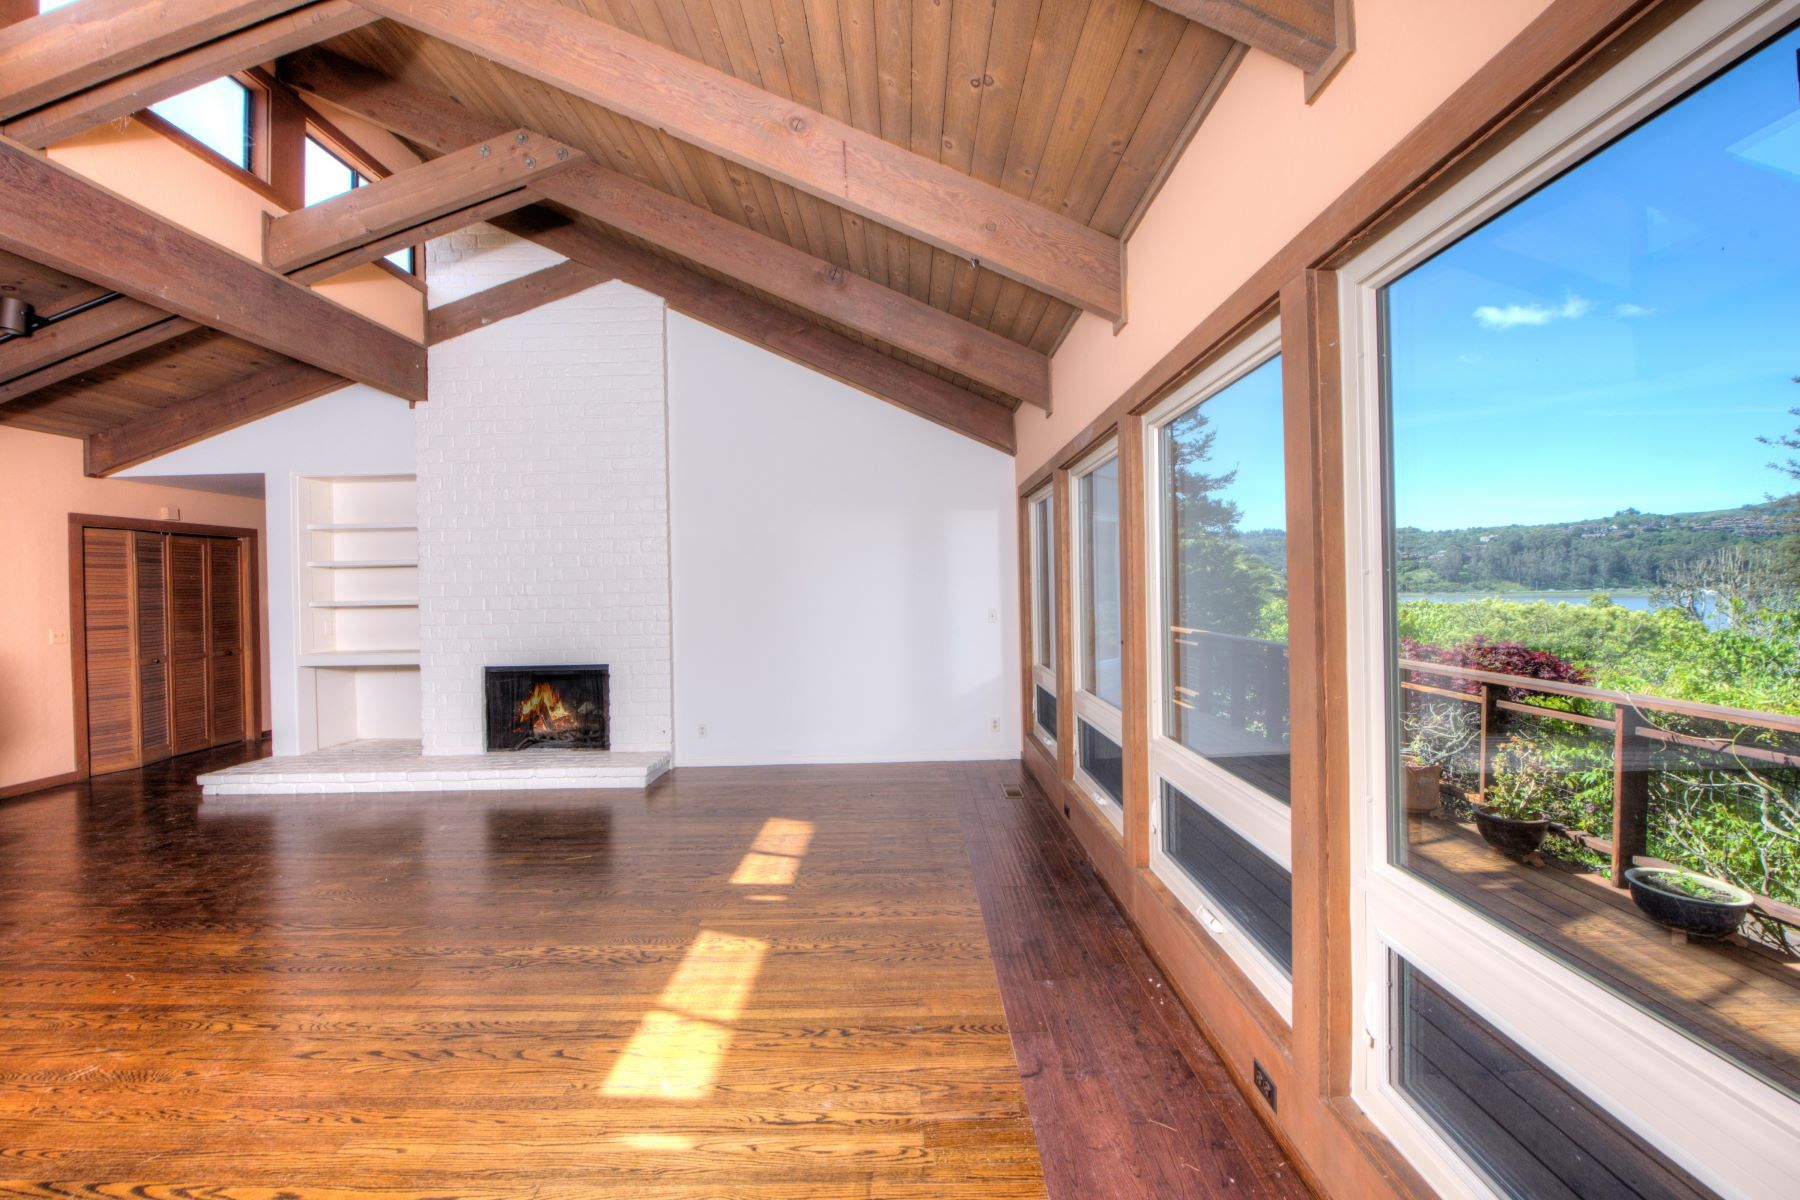 Single Family Home for Sale at Magical Mill Valley 2 Topside Way Mill Valley, California, 94941 United States